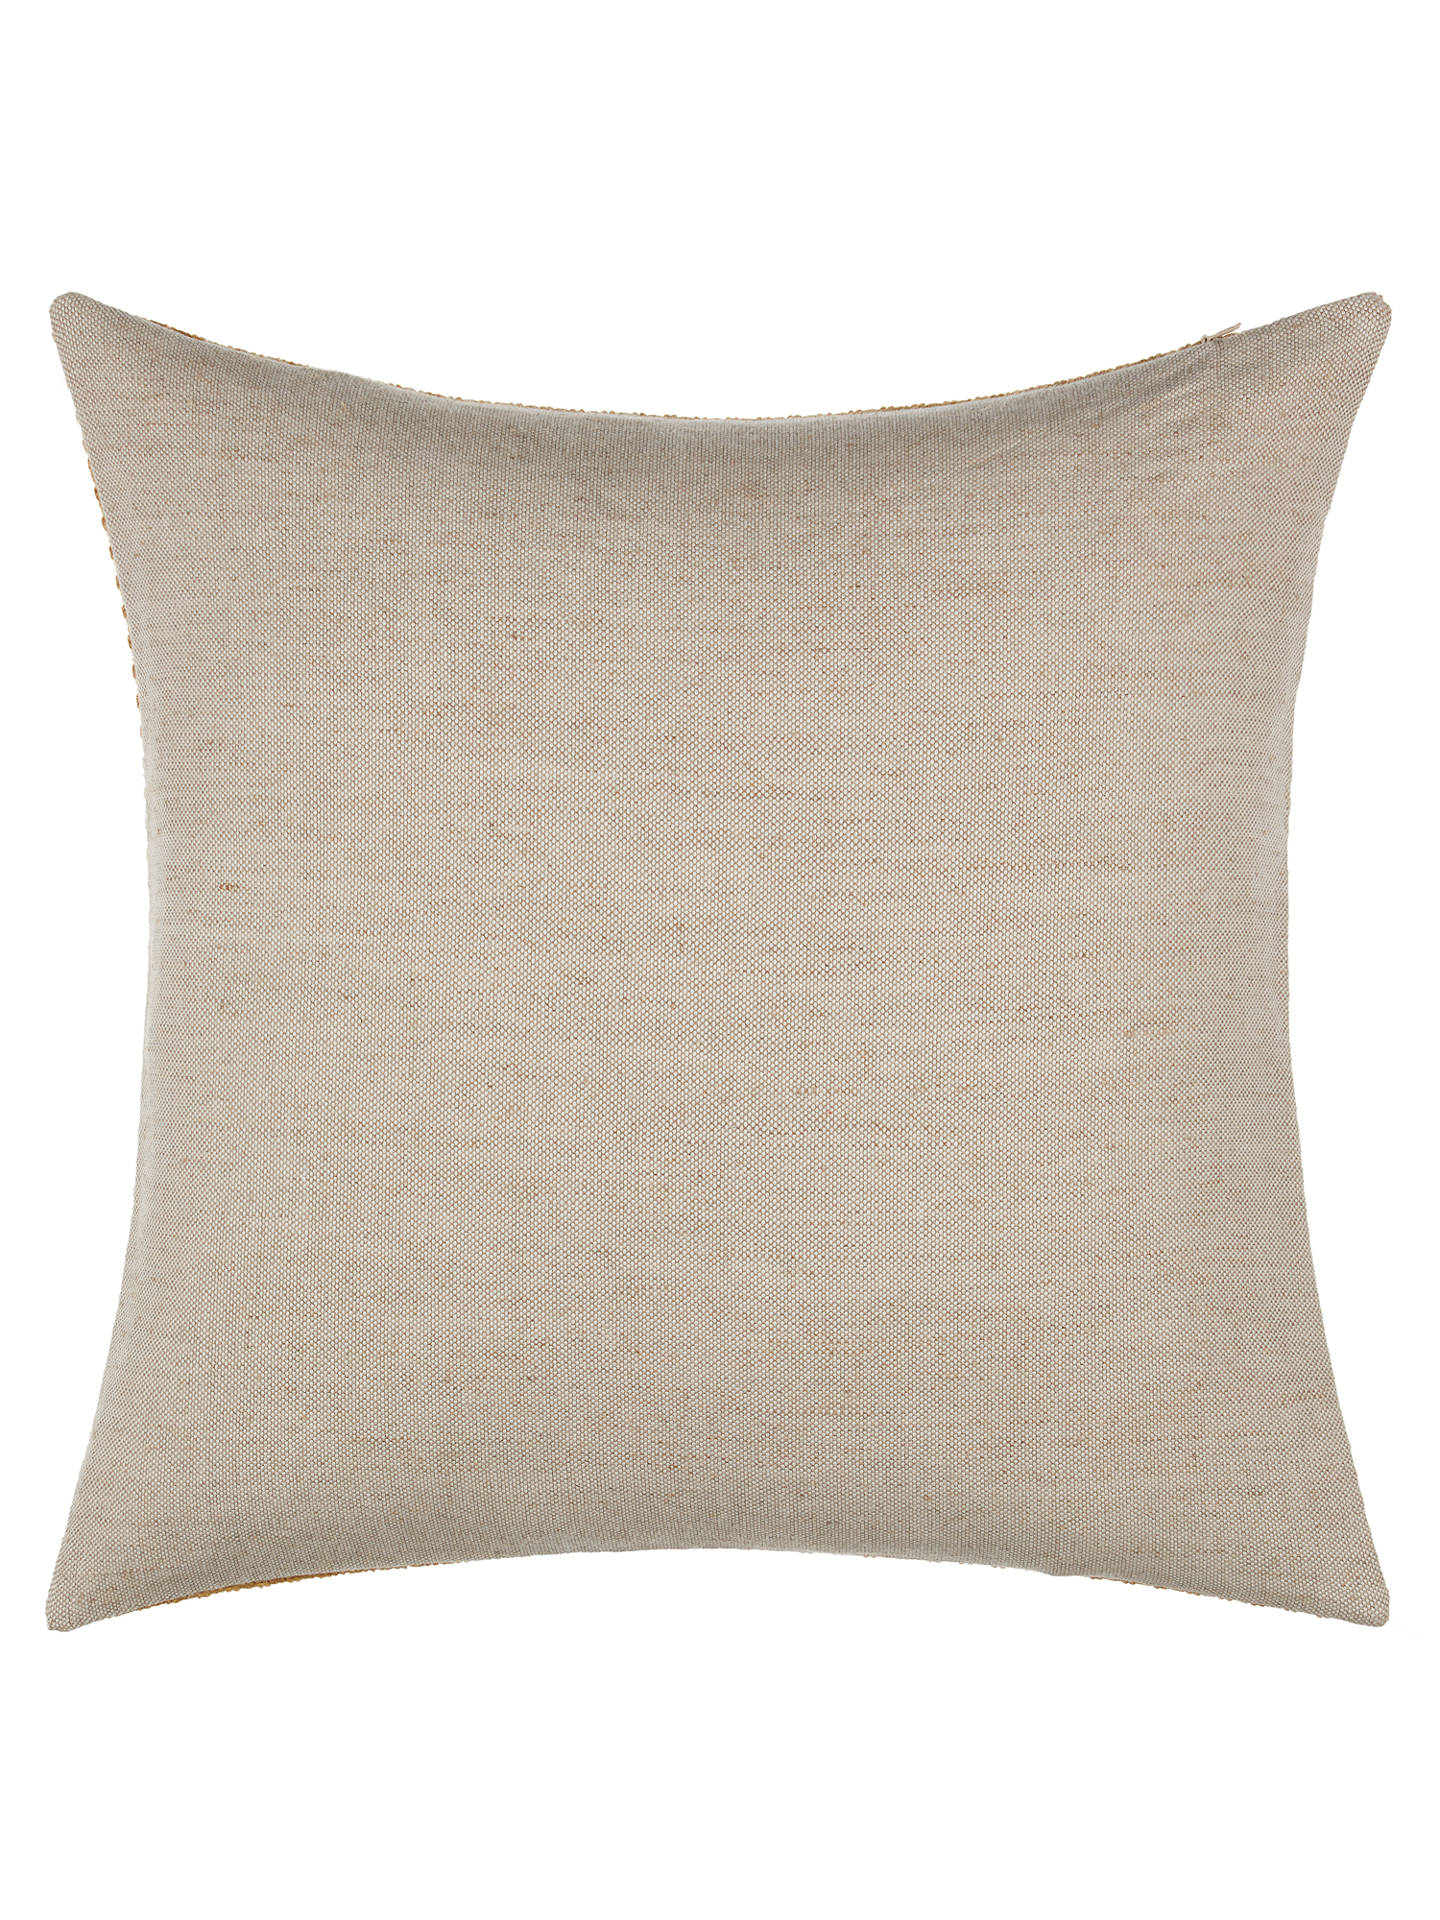 Buy Croft Collection Luce Cushion, Honey Online at johnlewis.com